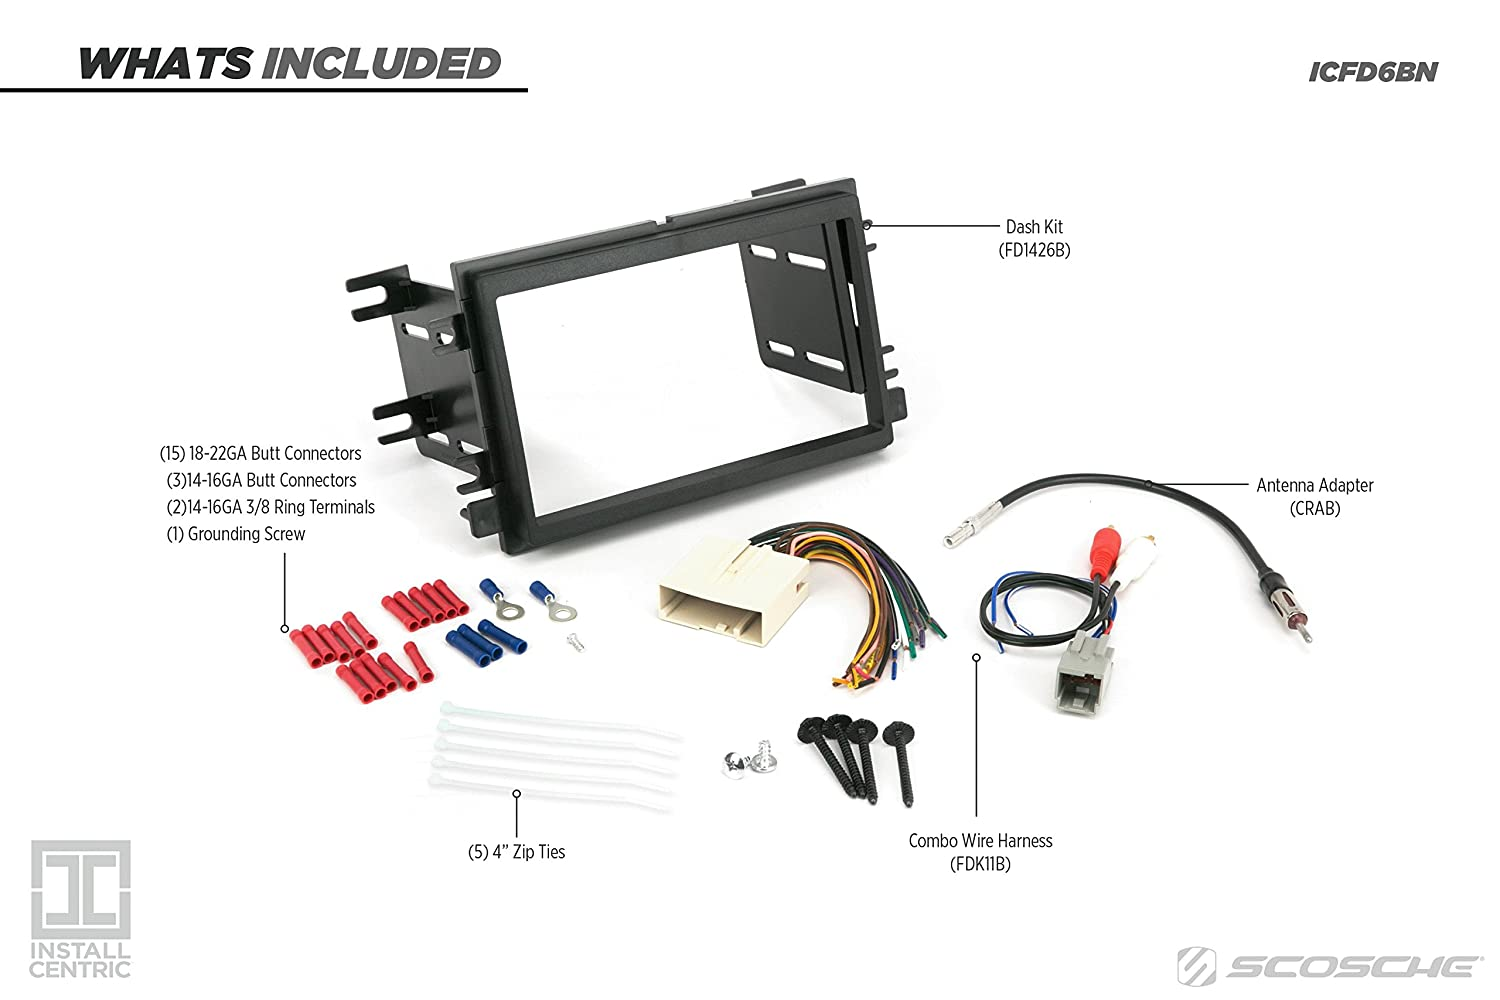 Scosche Fd1426b Double Din Installation Kit For 2004 Up Wiring Harness Diagram 2006 Ford Mustang Vehicles Car Electronics